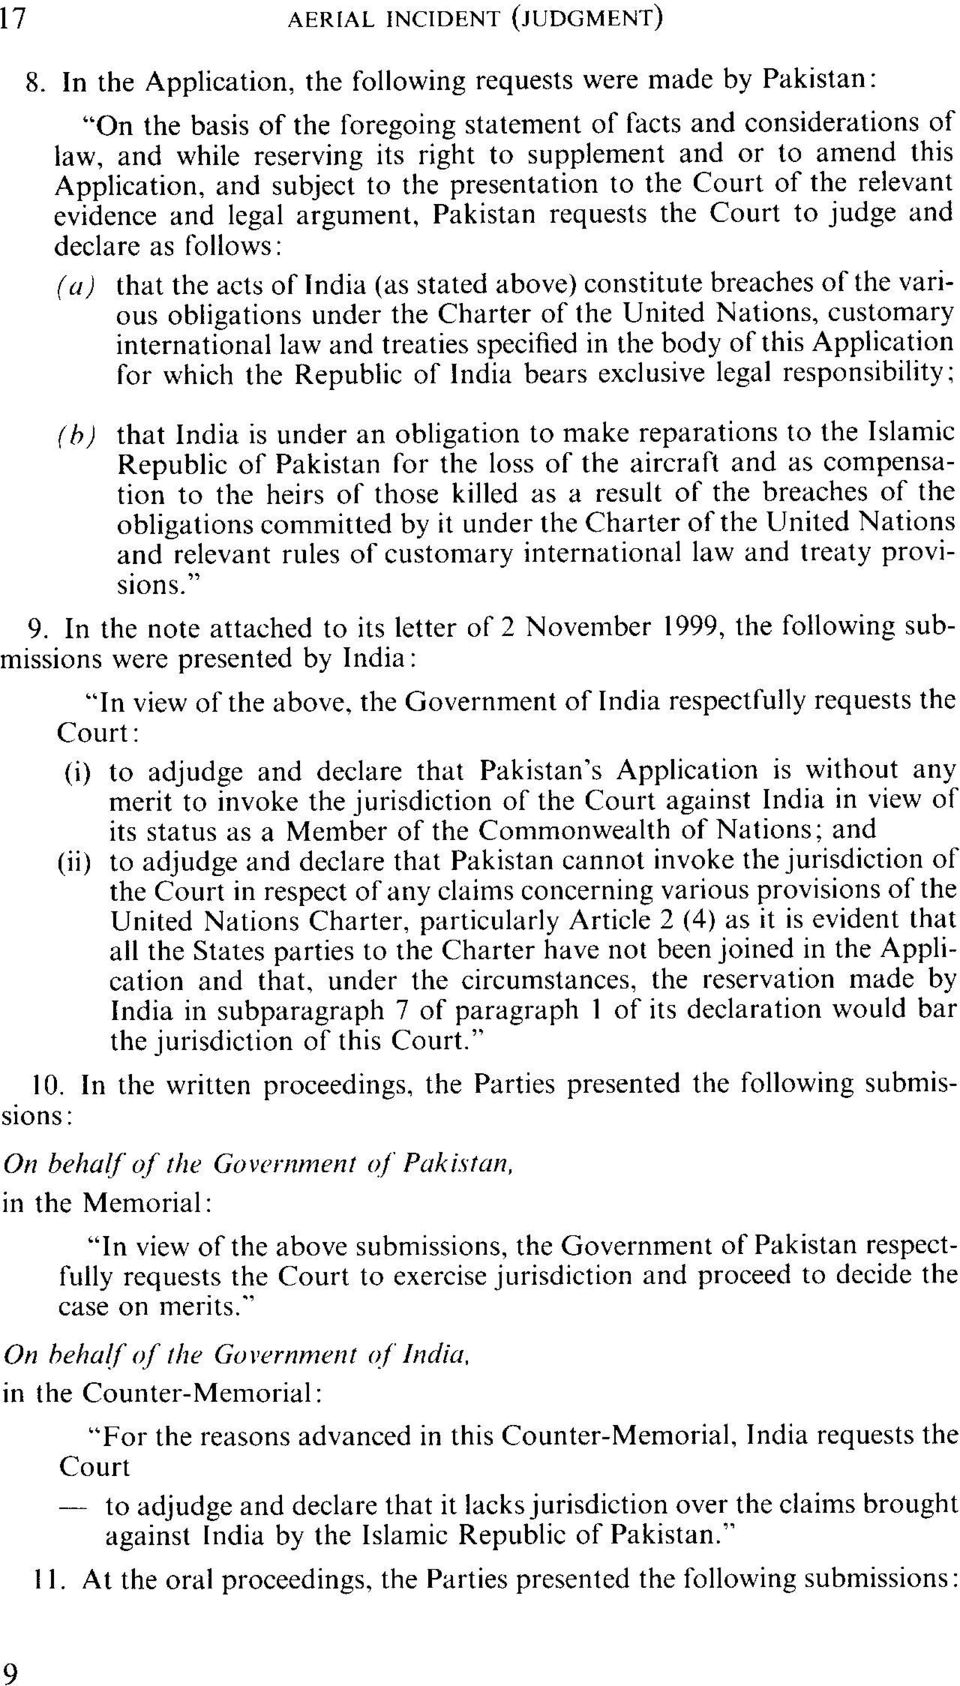 amend this Application, and subject to the presentation to the Court of the relevant evidence and legal argument, Pakistan requests the Court to judge and declare as follows: (u) that the acts of